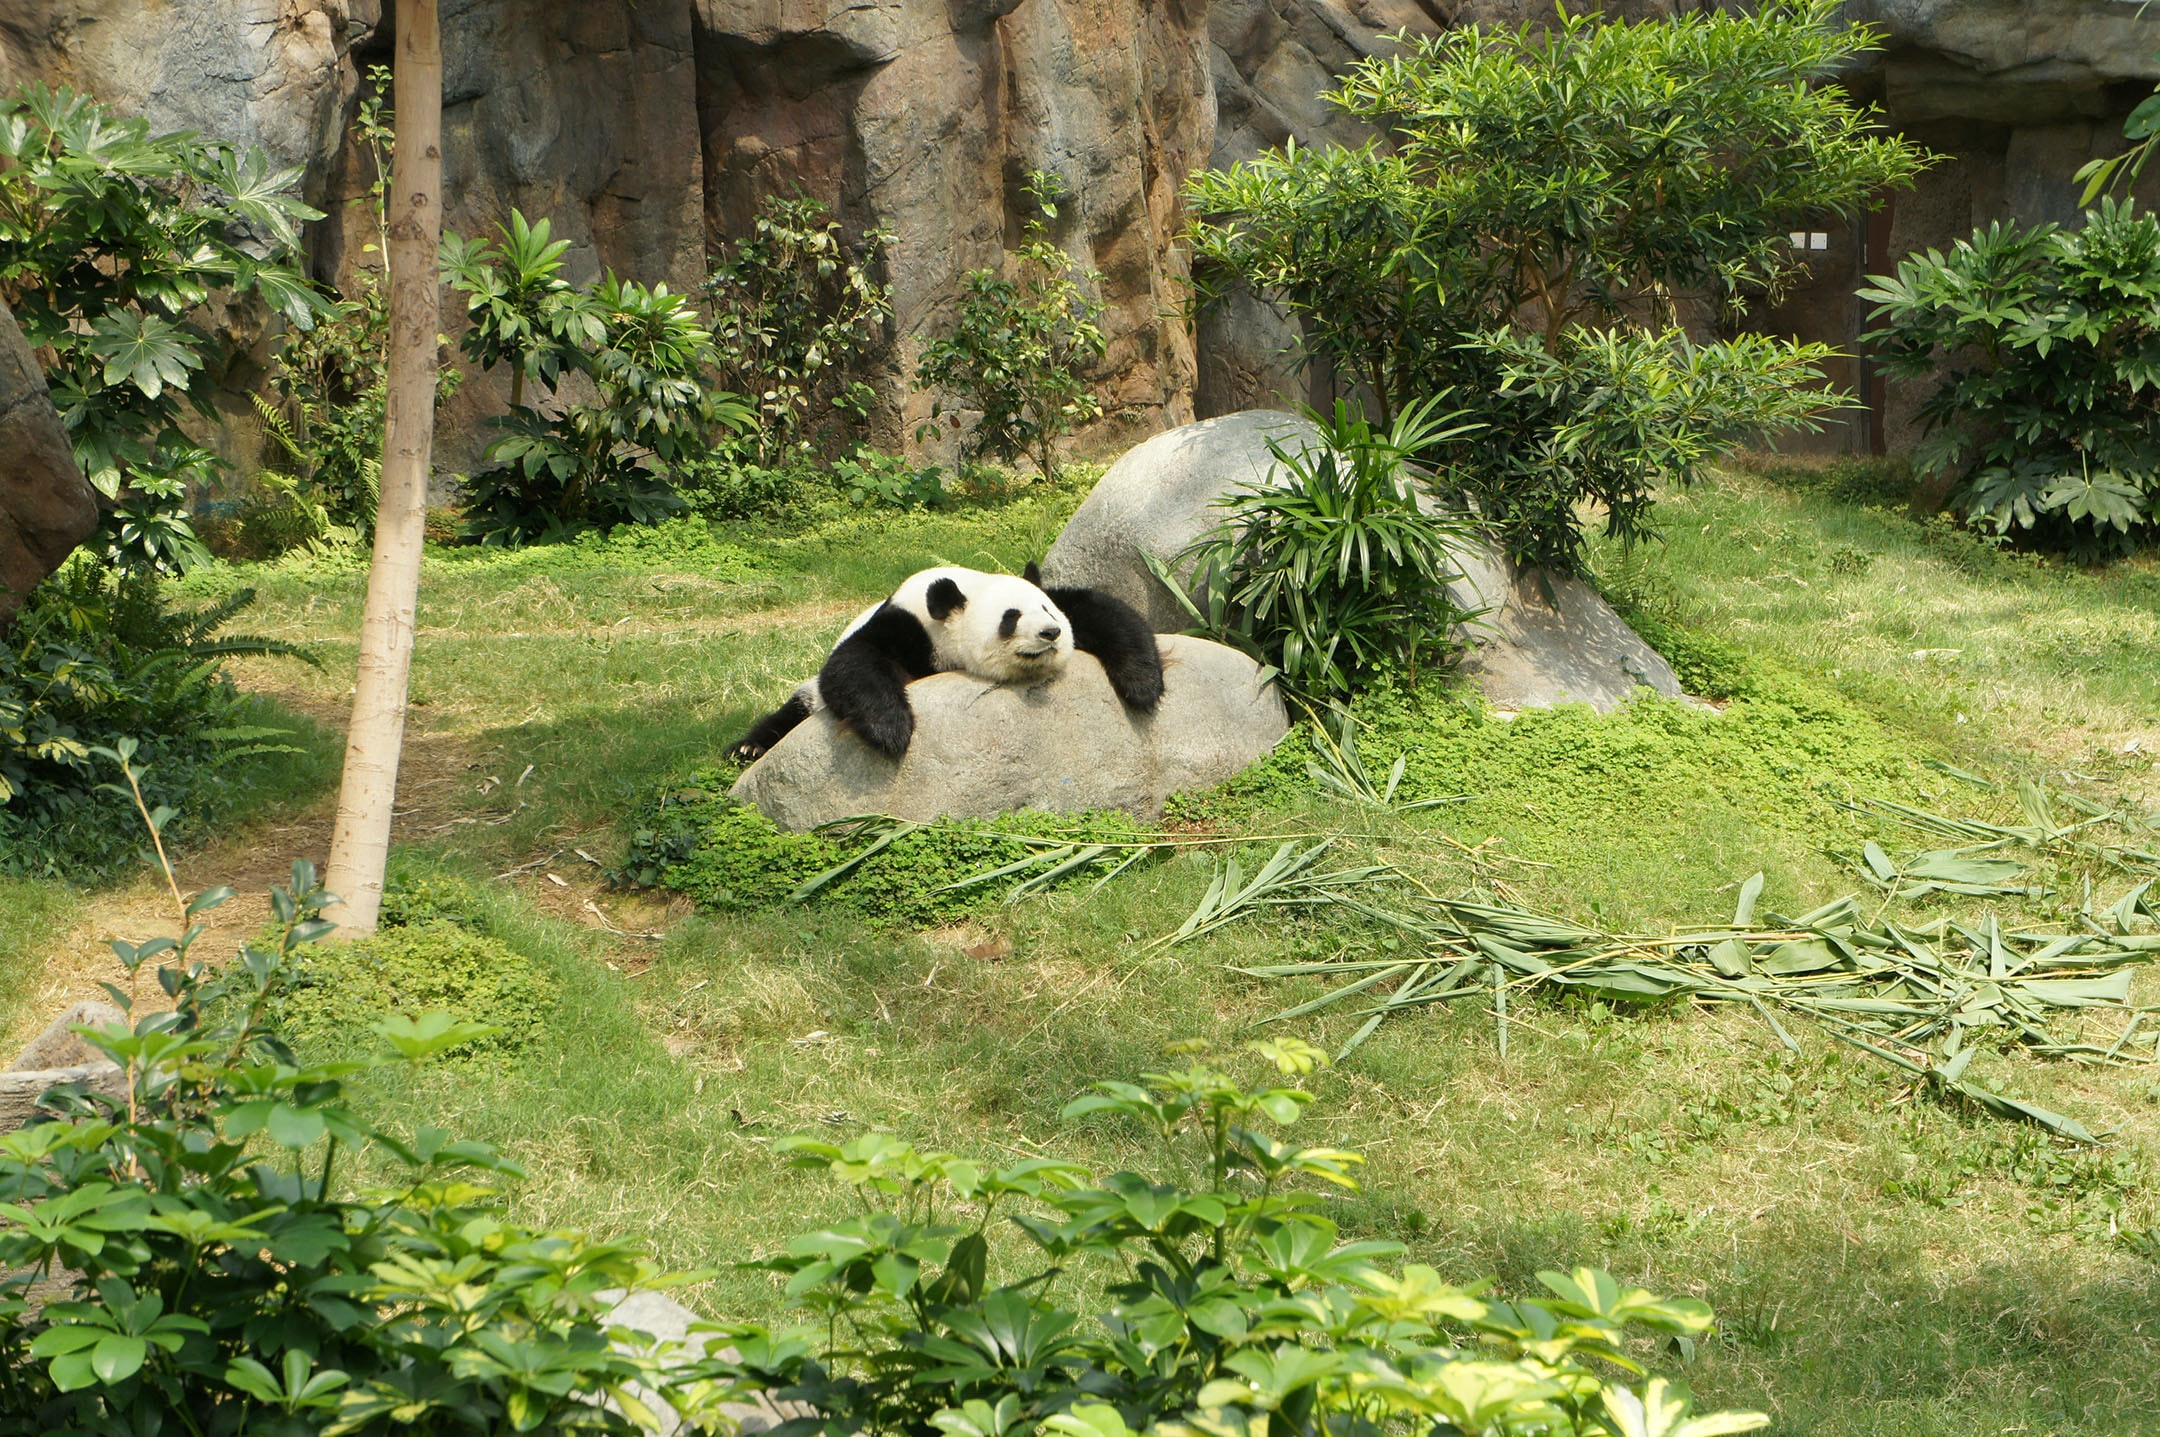 white and black panda relaxing on rock